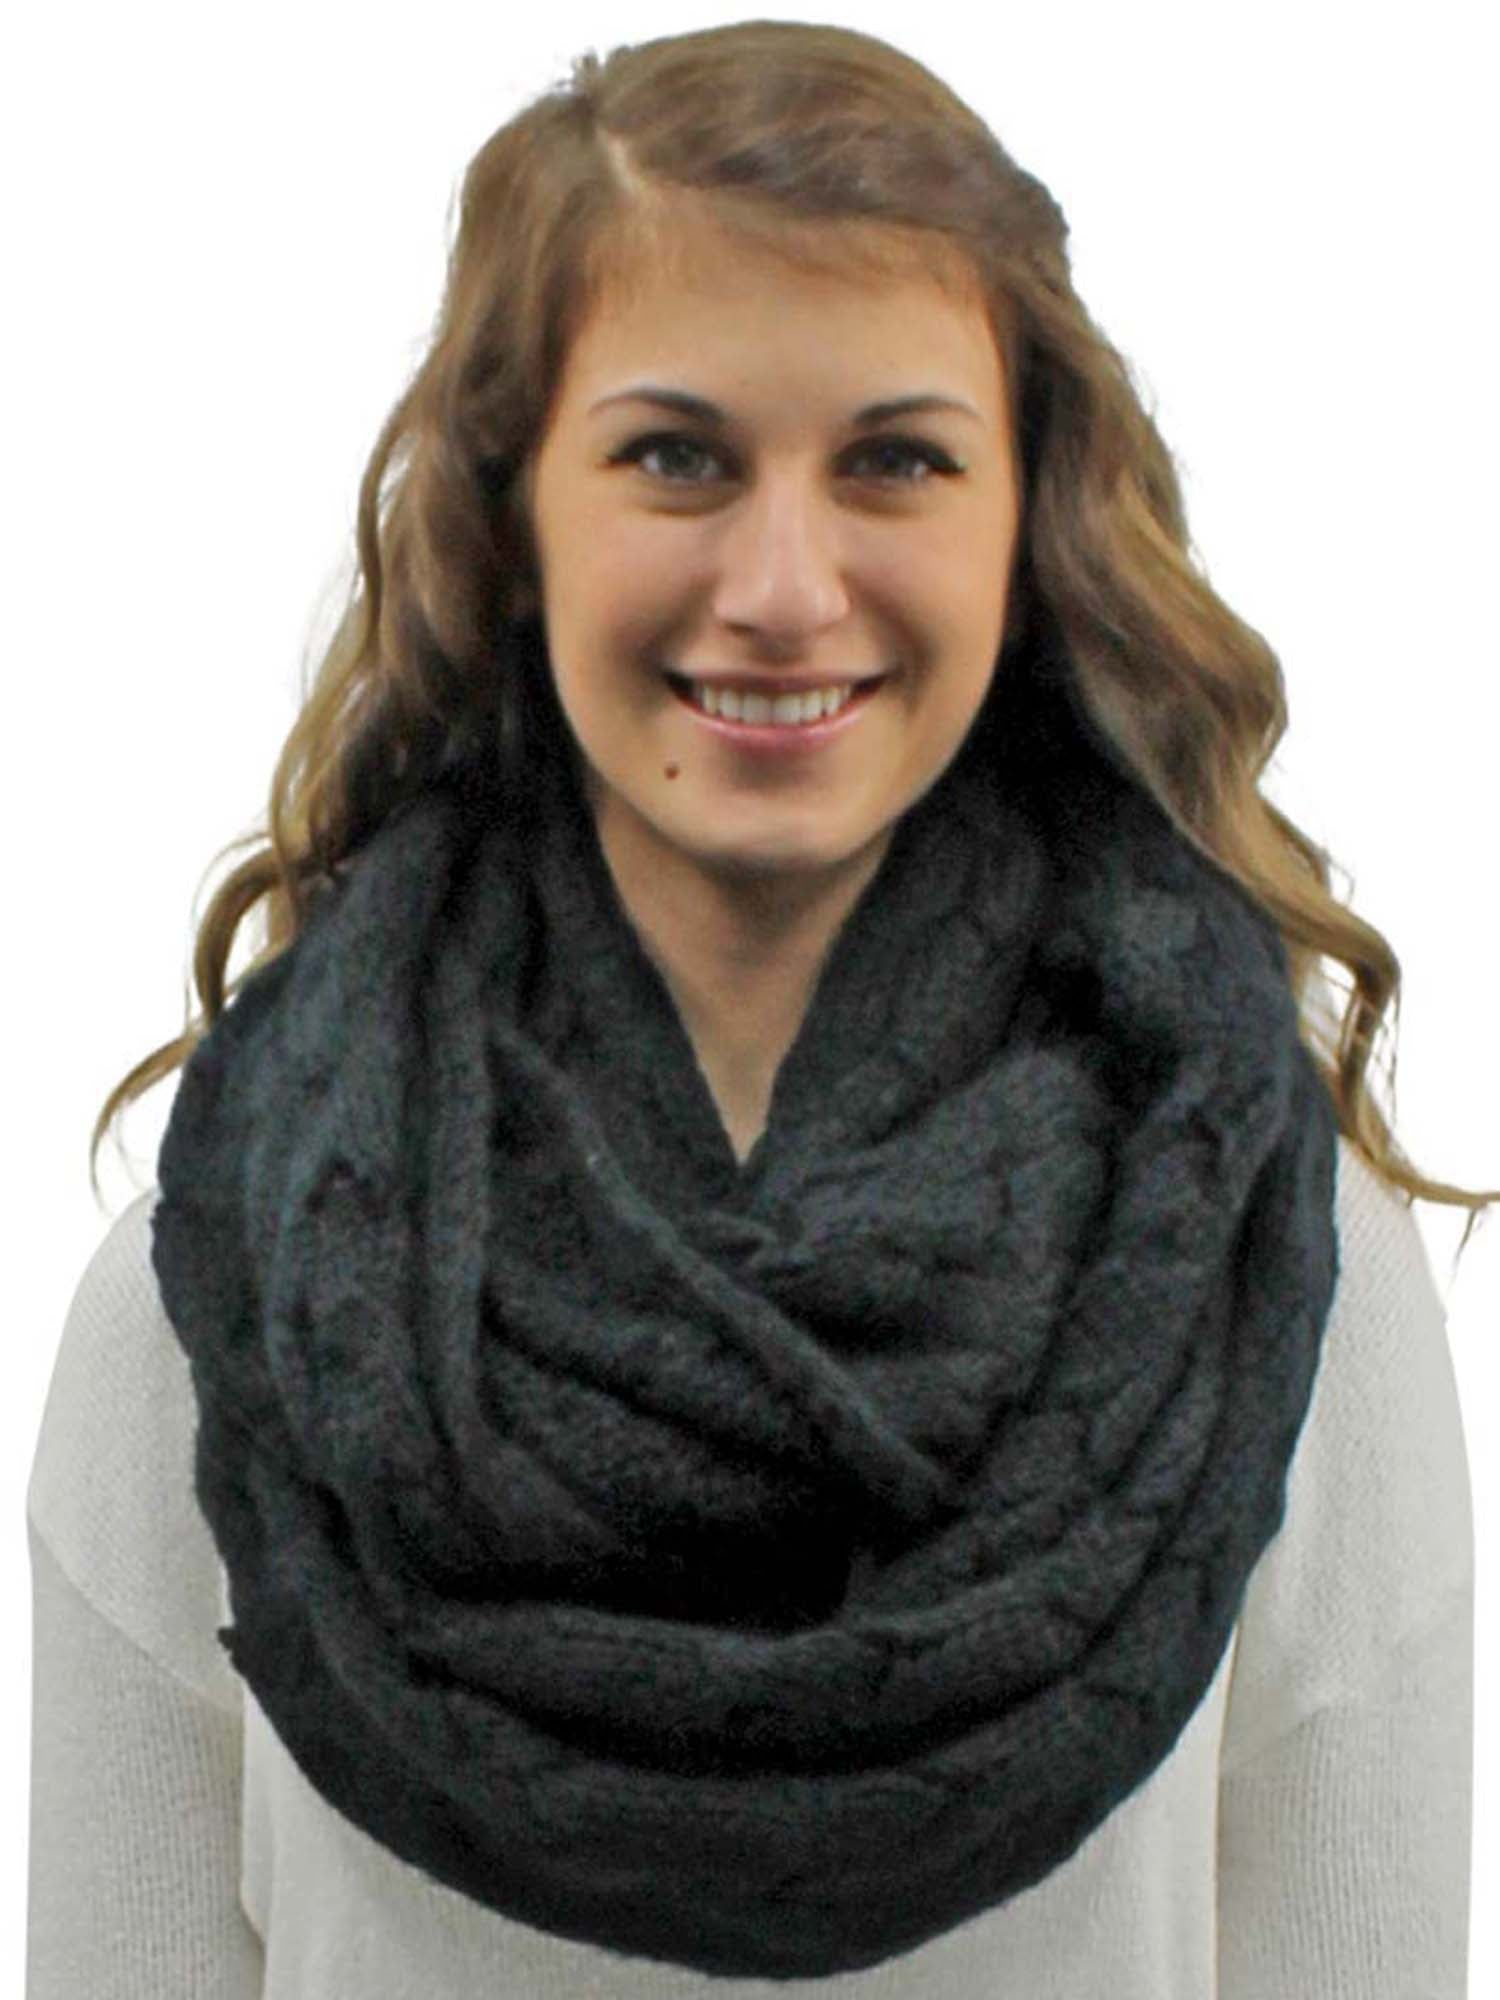 Oversize Chunky Cable Knit Unisex Infinity Scarf